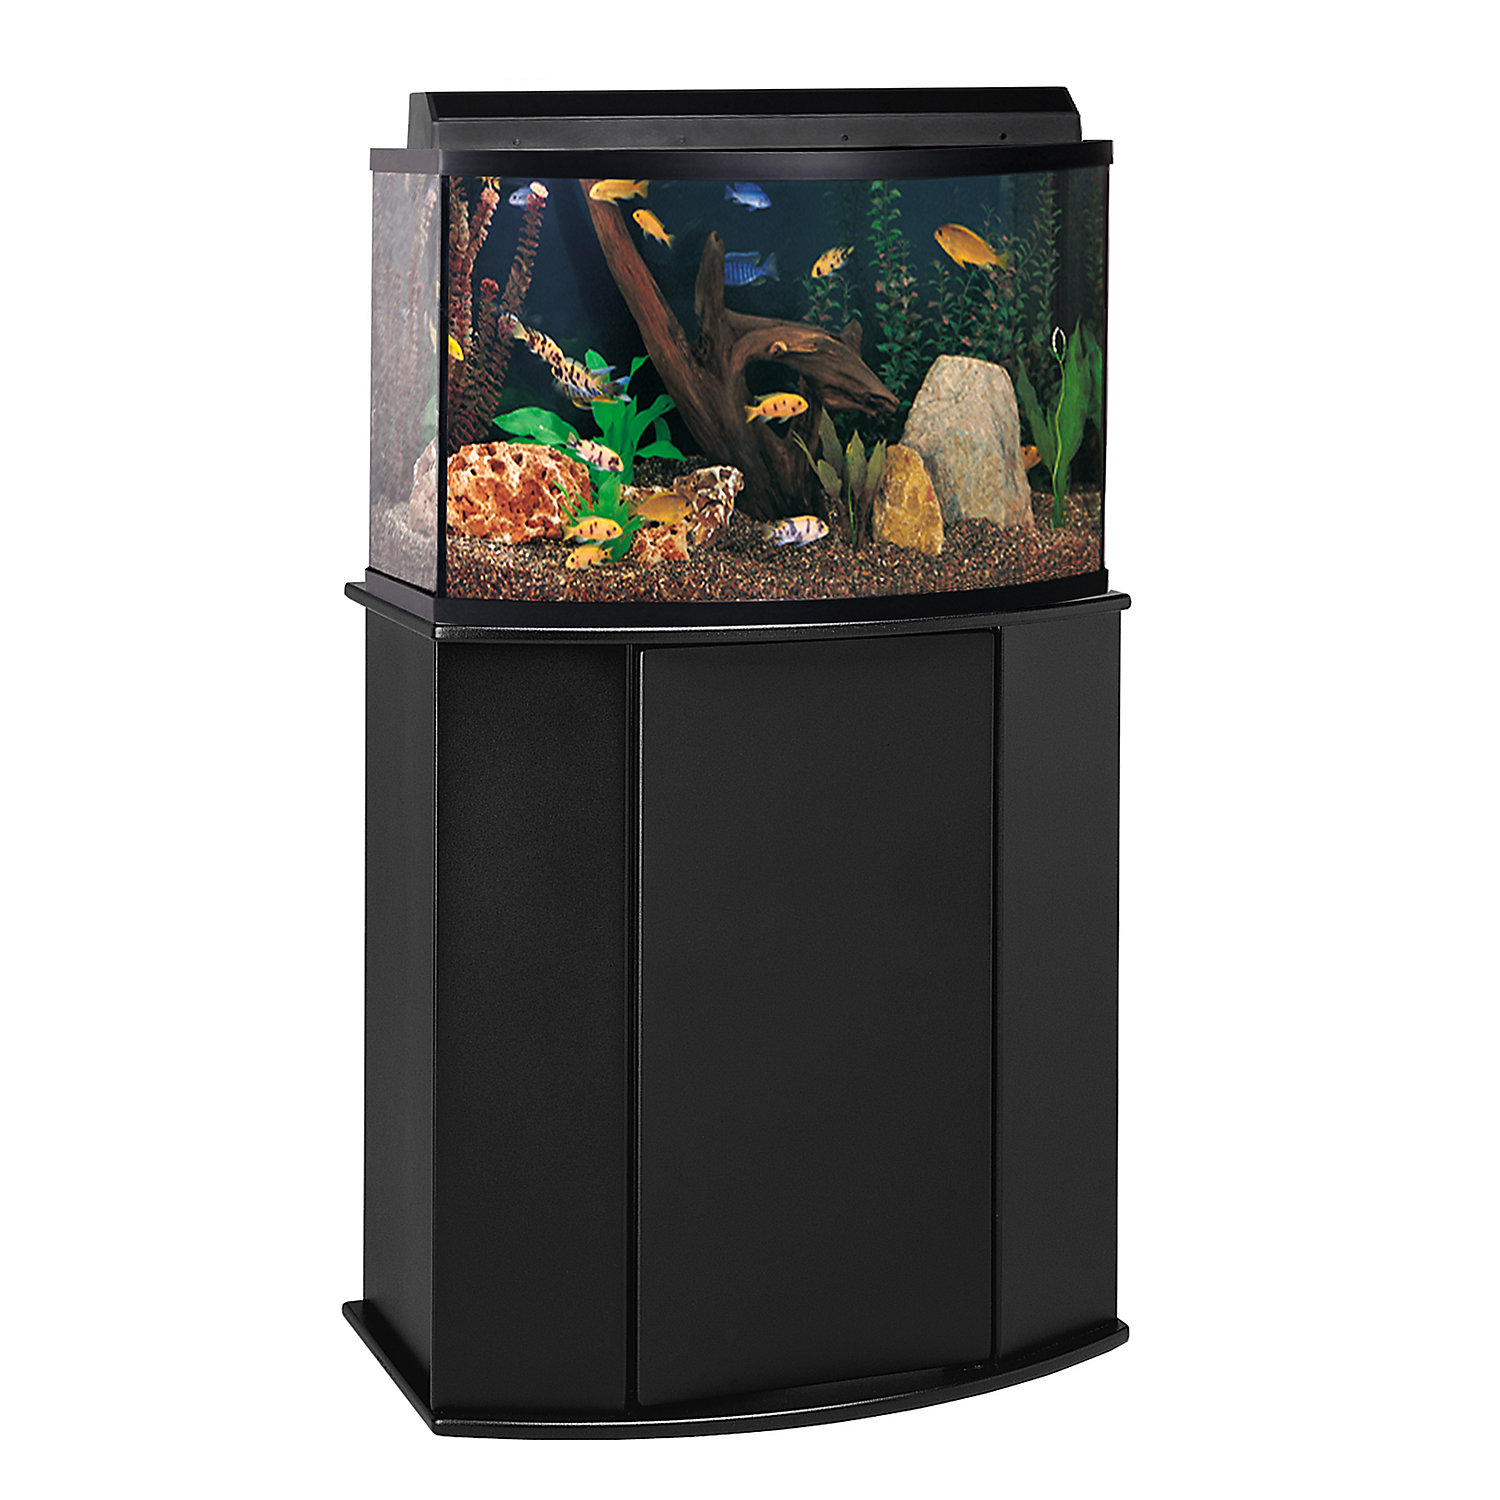 Aquatic Fundamentals 26 Gallon Bowfront Aquarium Stand